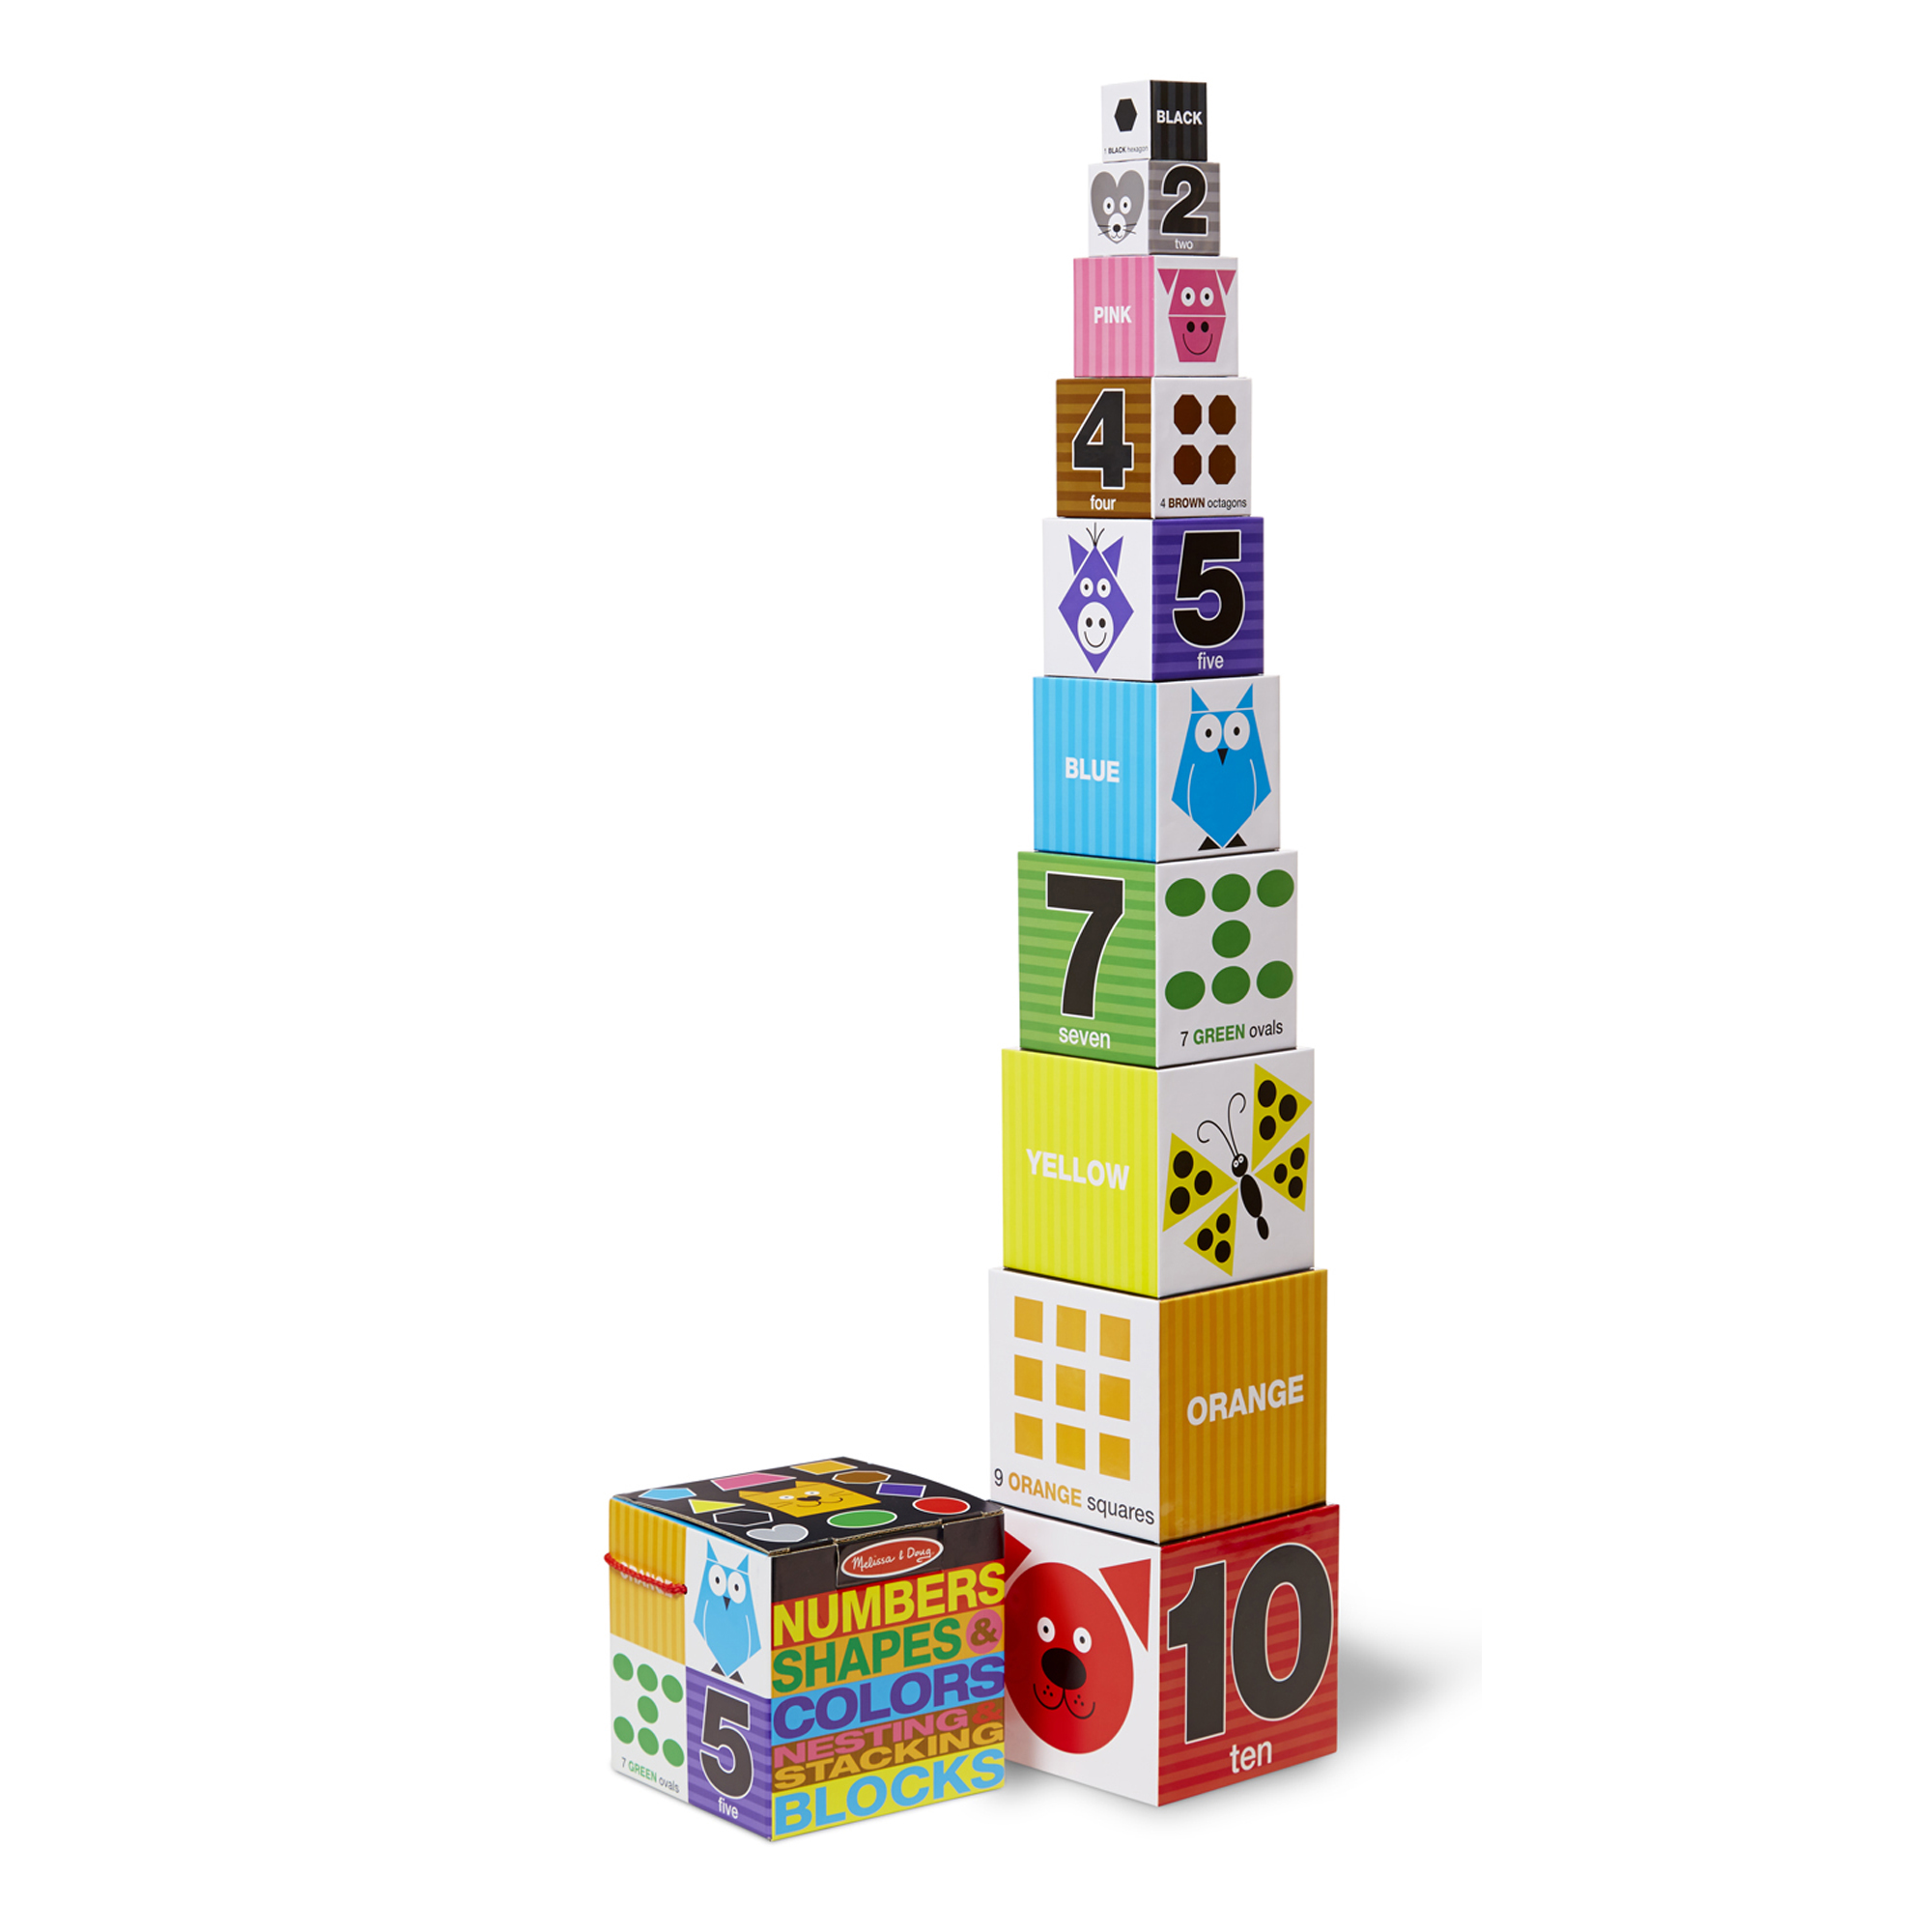 Nesting  Stacking Blocks  Numbers Shapes Colors